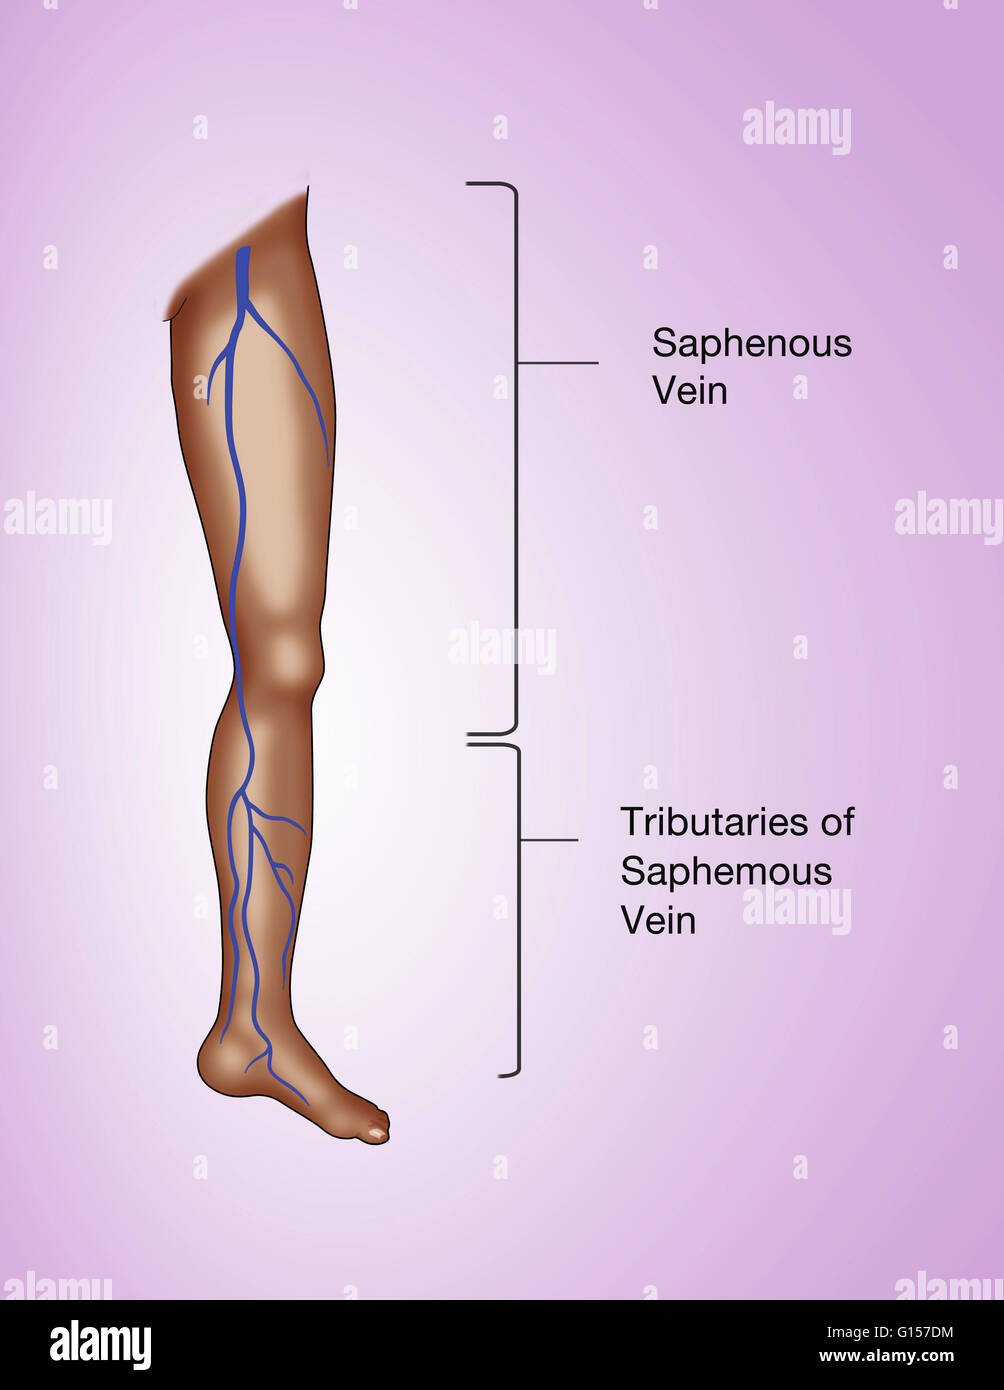 Labeled Illustration Of The Leg Showing The Great Saphenous Vein